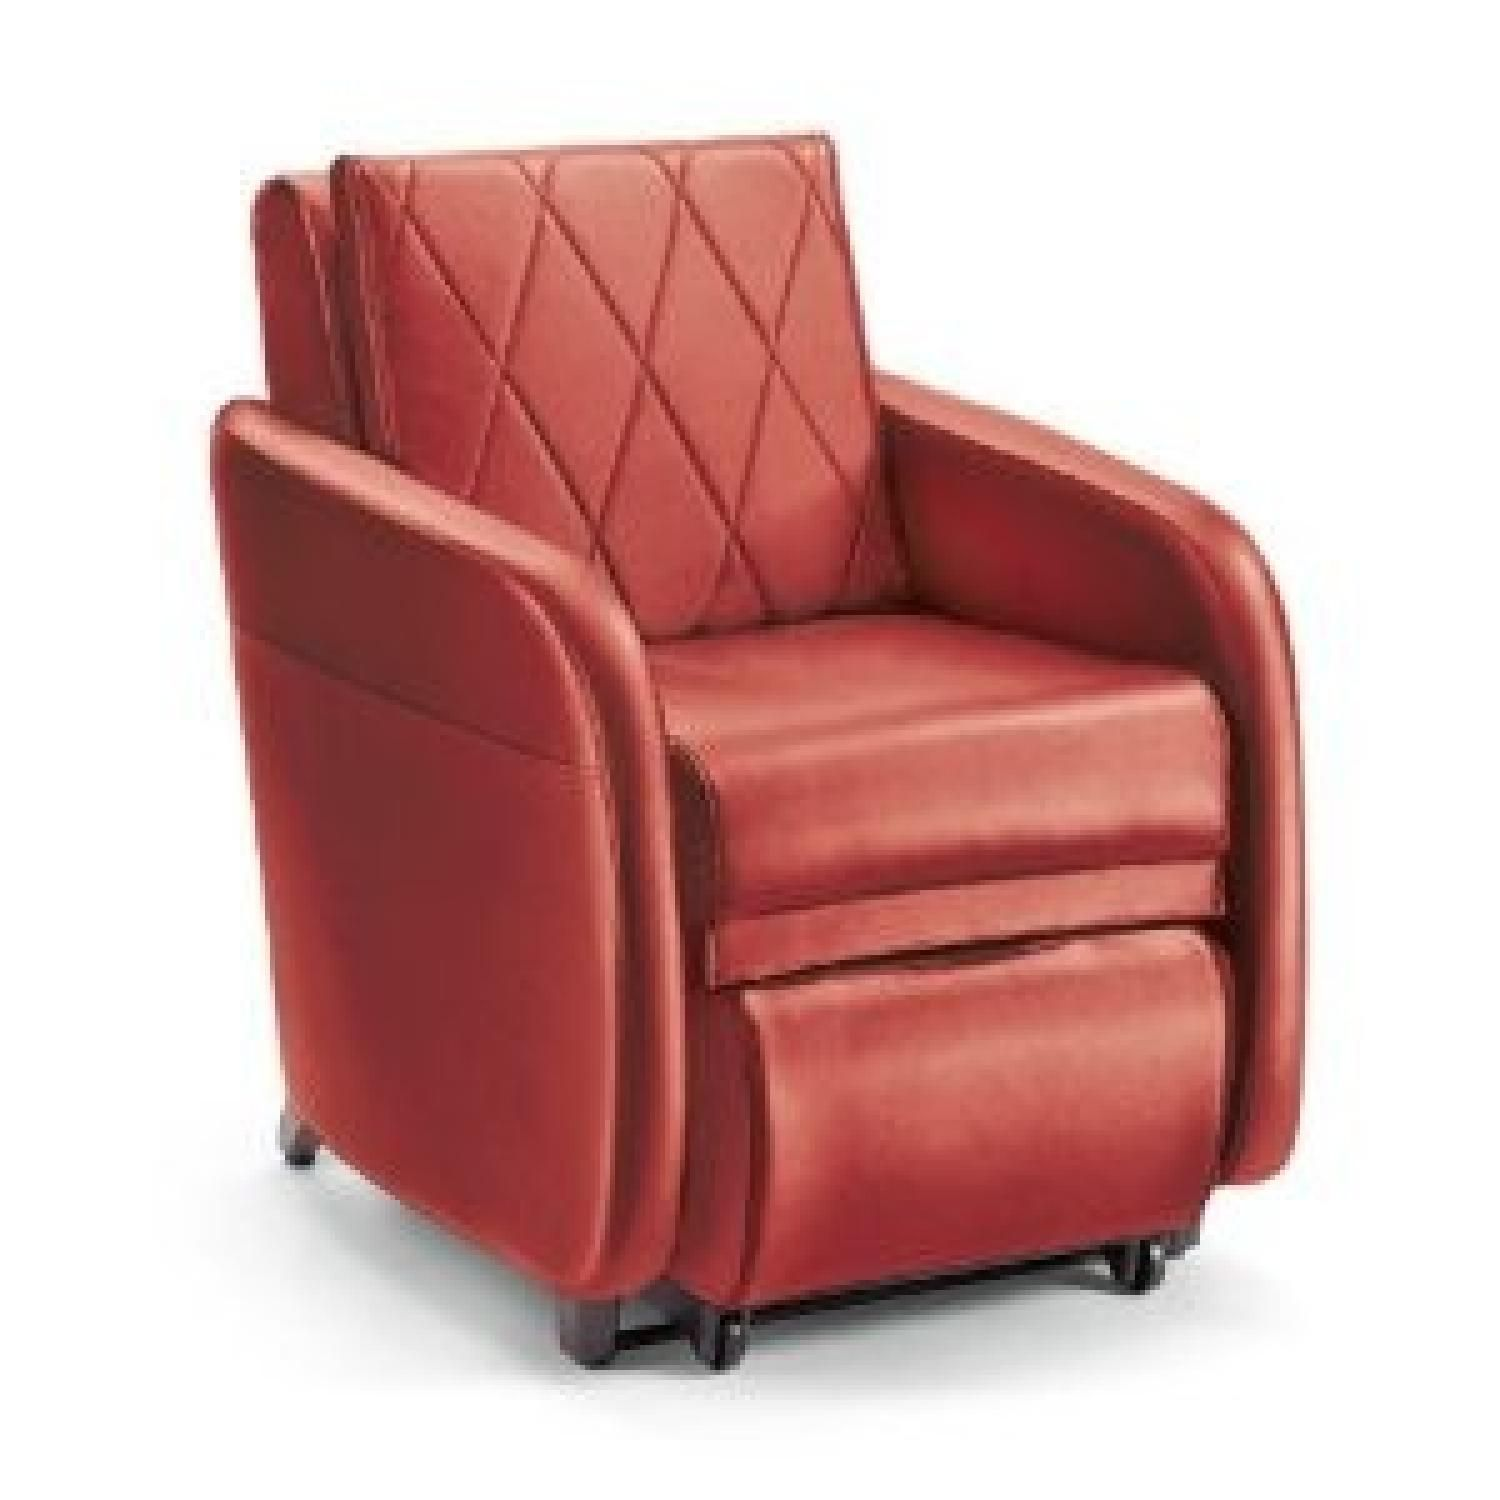 chair massage product webshop sofa extra osim udiva classic nz image